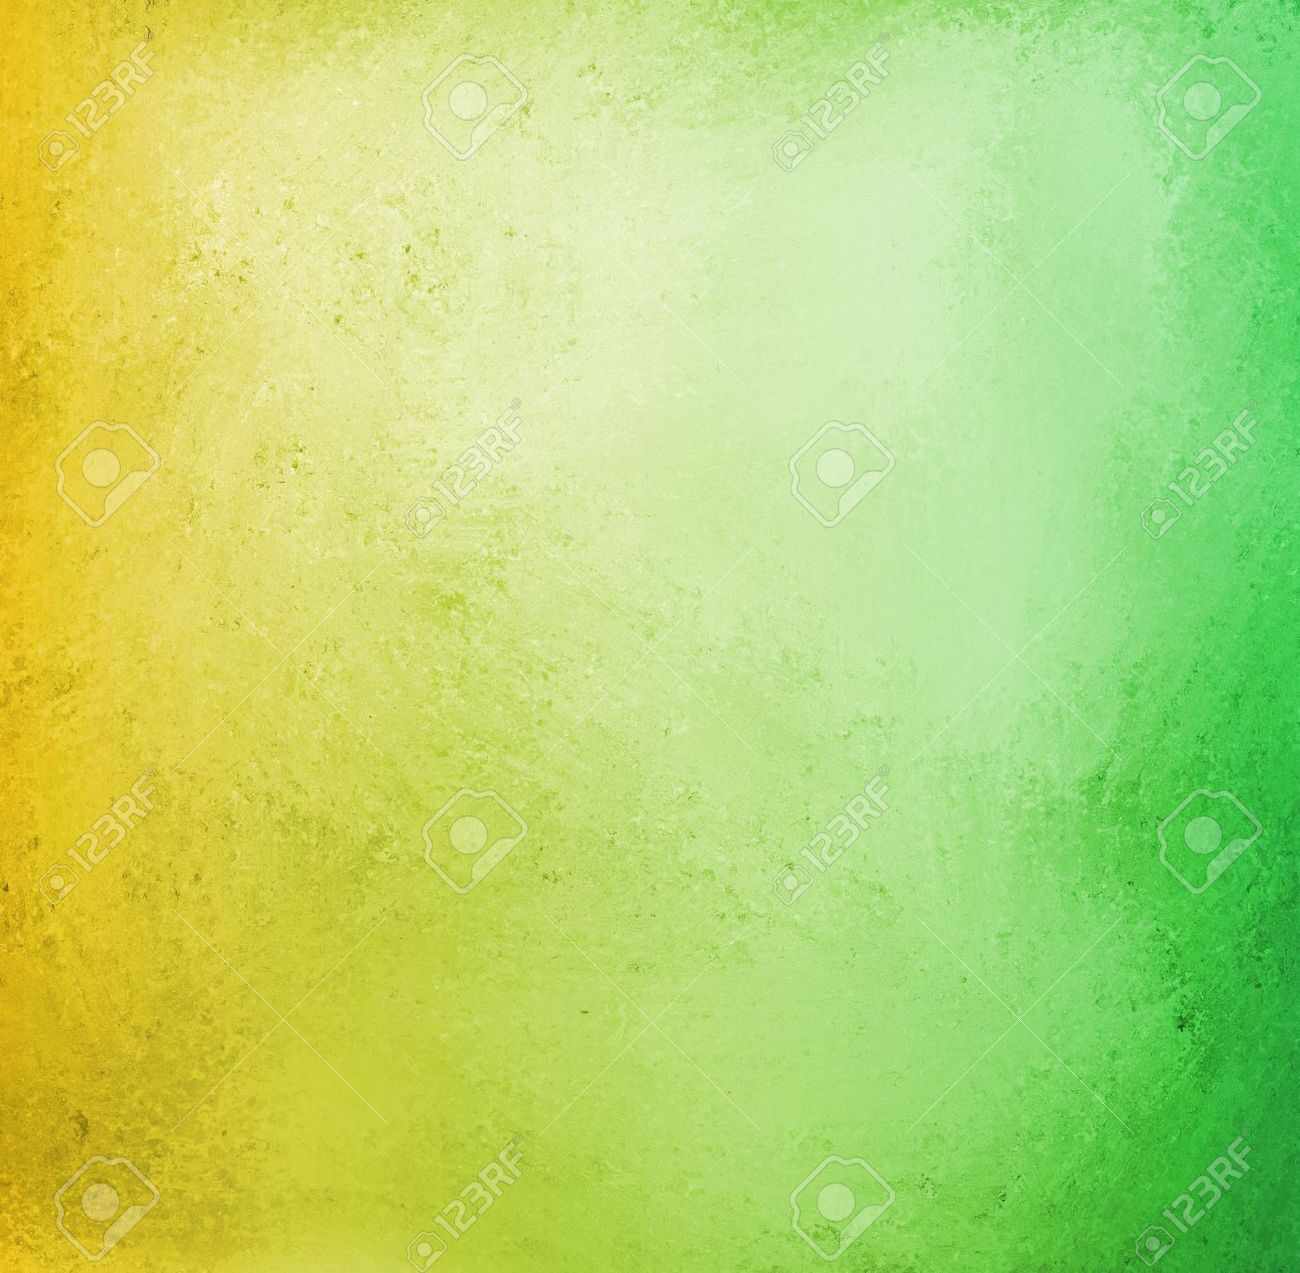 Lime Green Background Abstract Faded Border Vintage Grunge Background